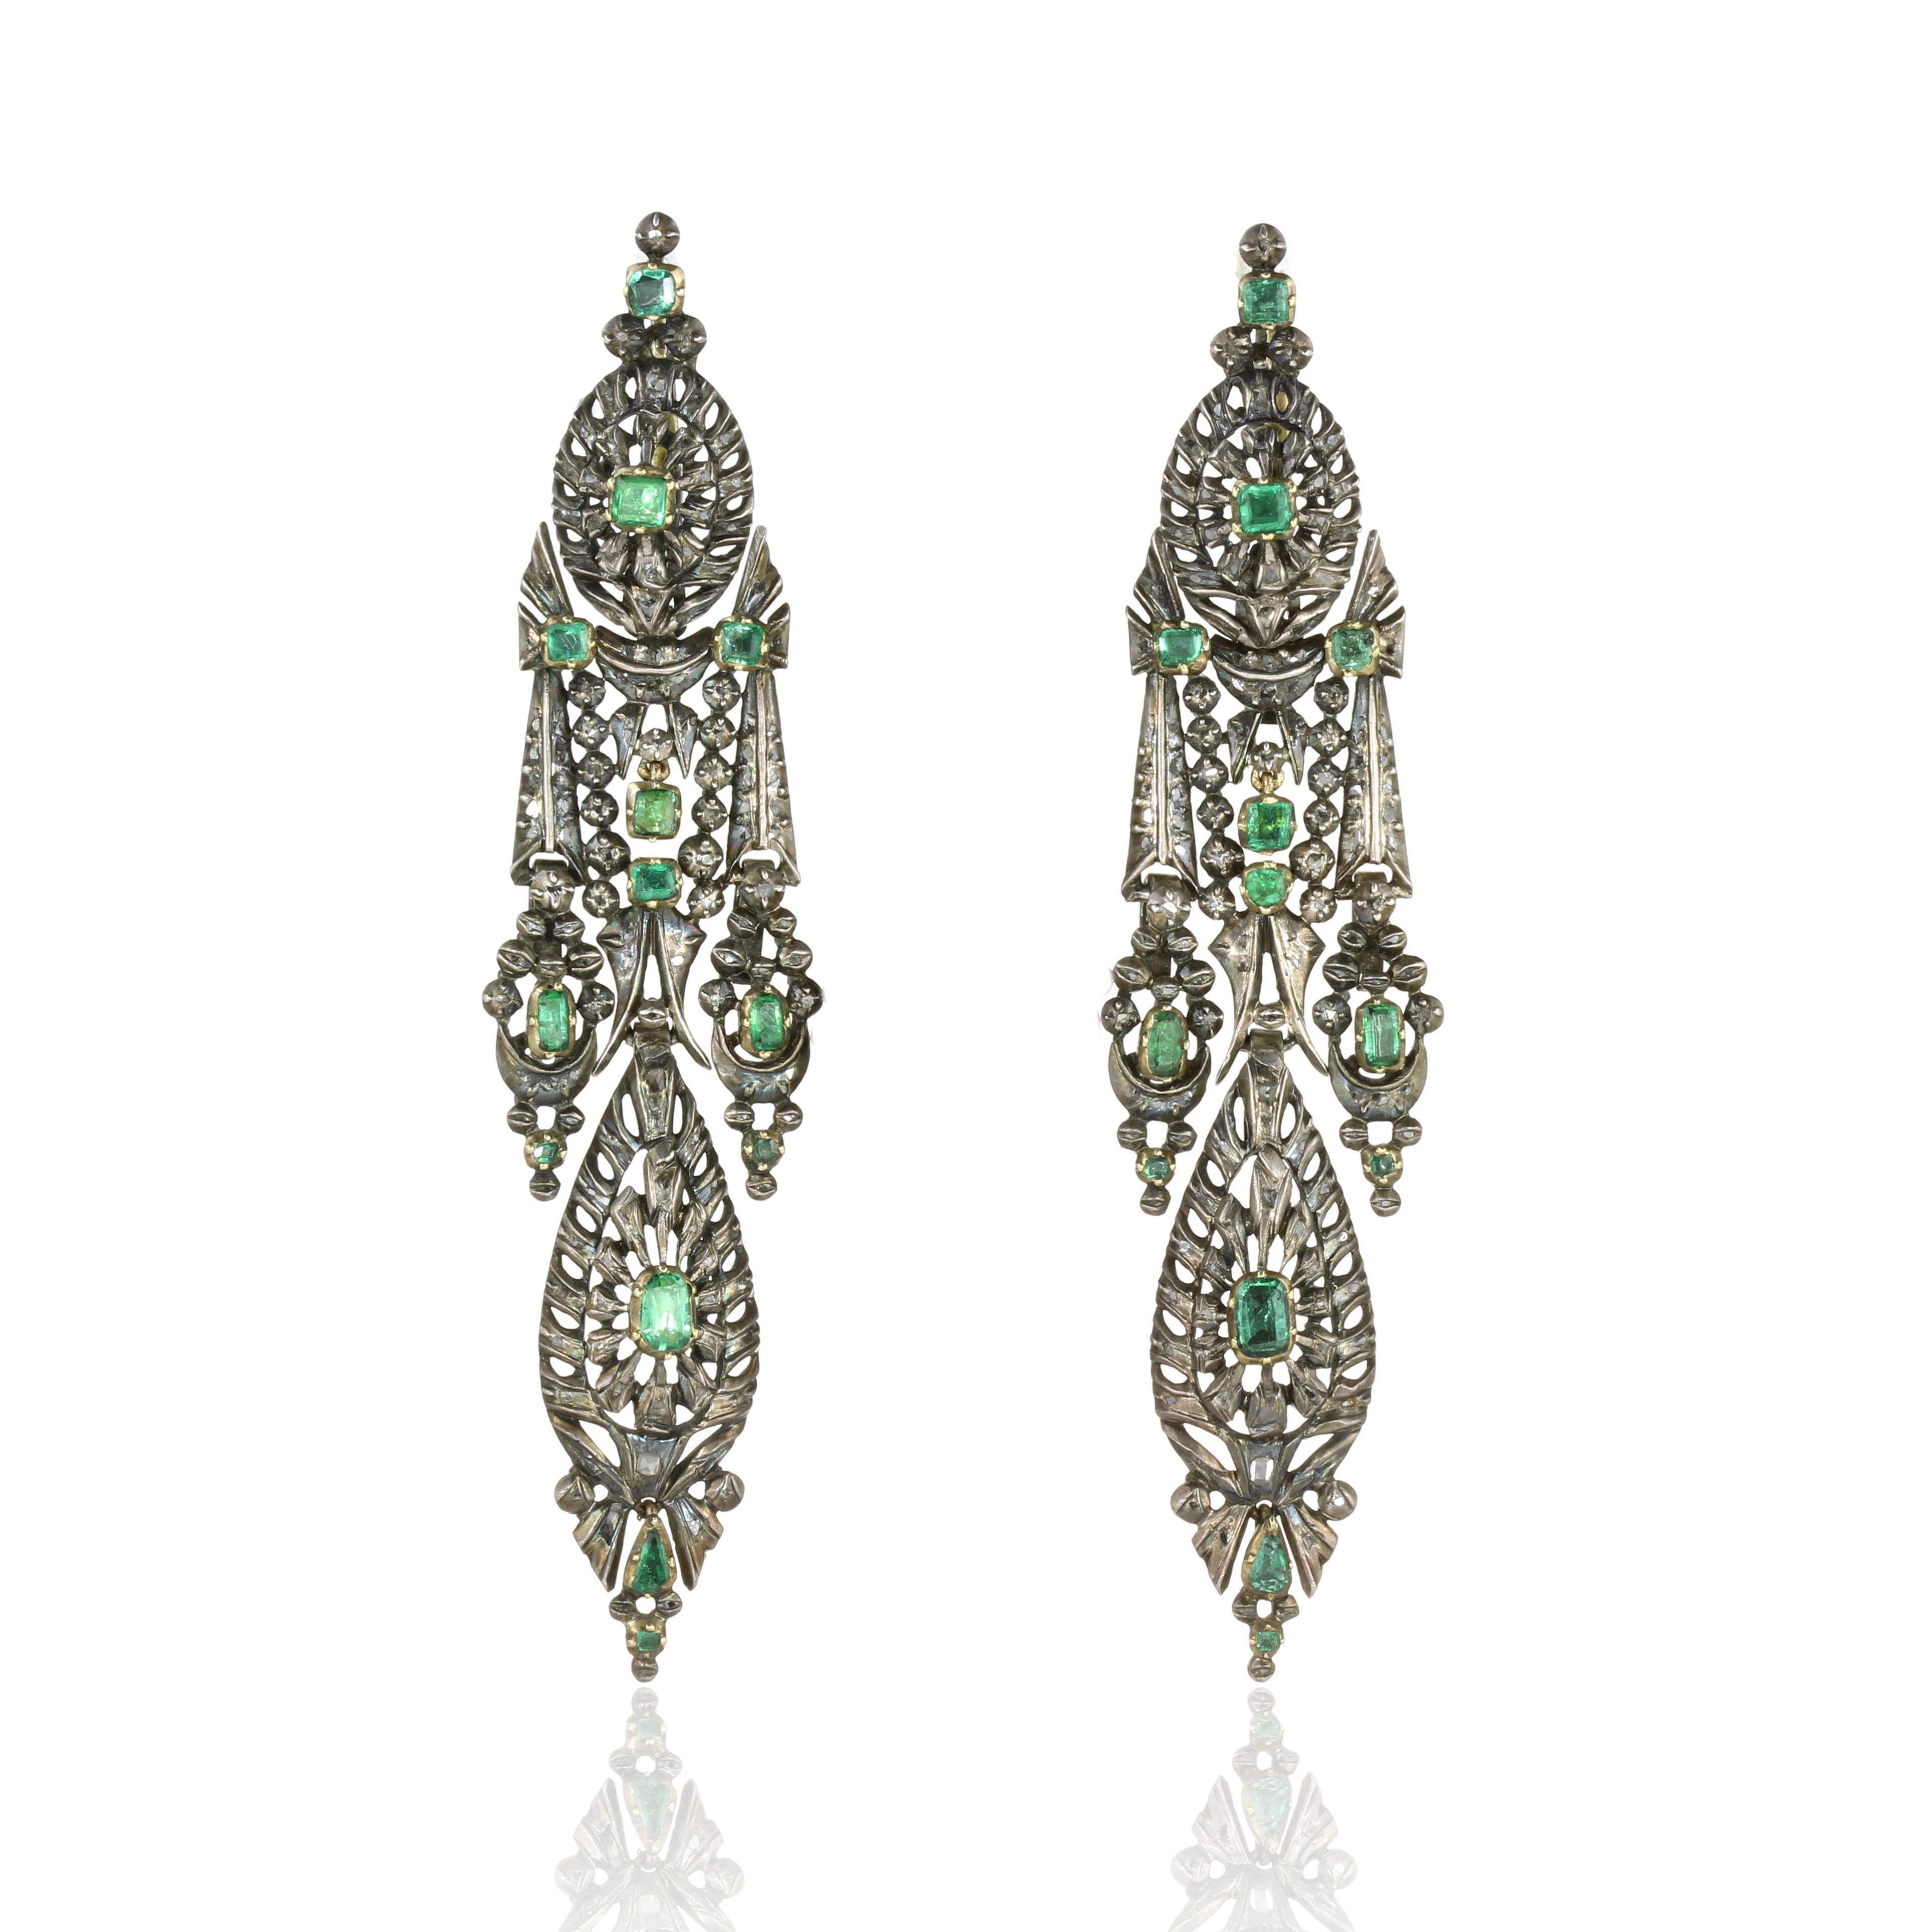 A PAIR OF ANTIQUE EMERALD AND DIAMOND EARRINGS, SPANISH CIRCA 1780 in silver, the articulated bodies